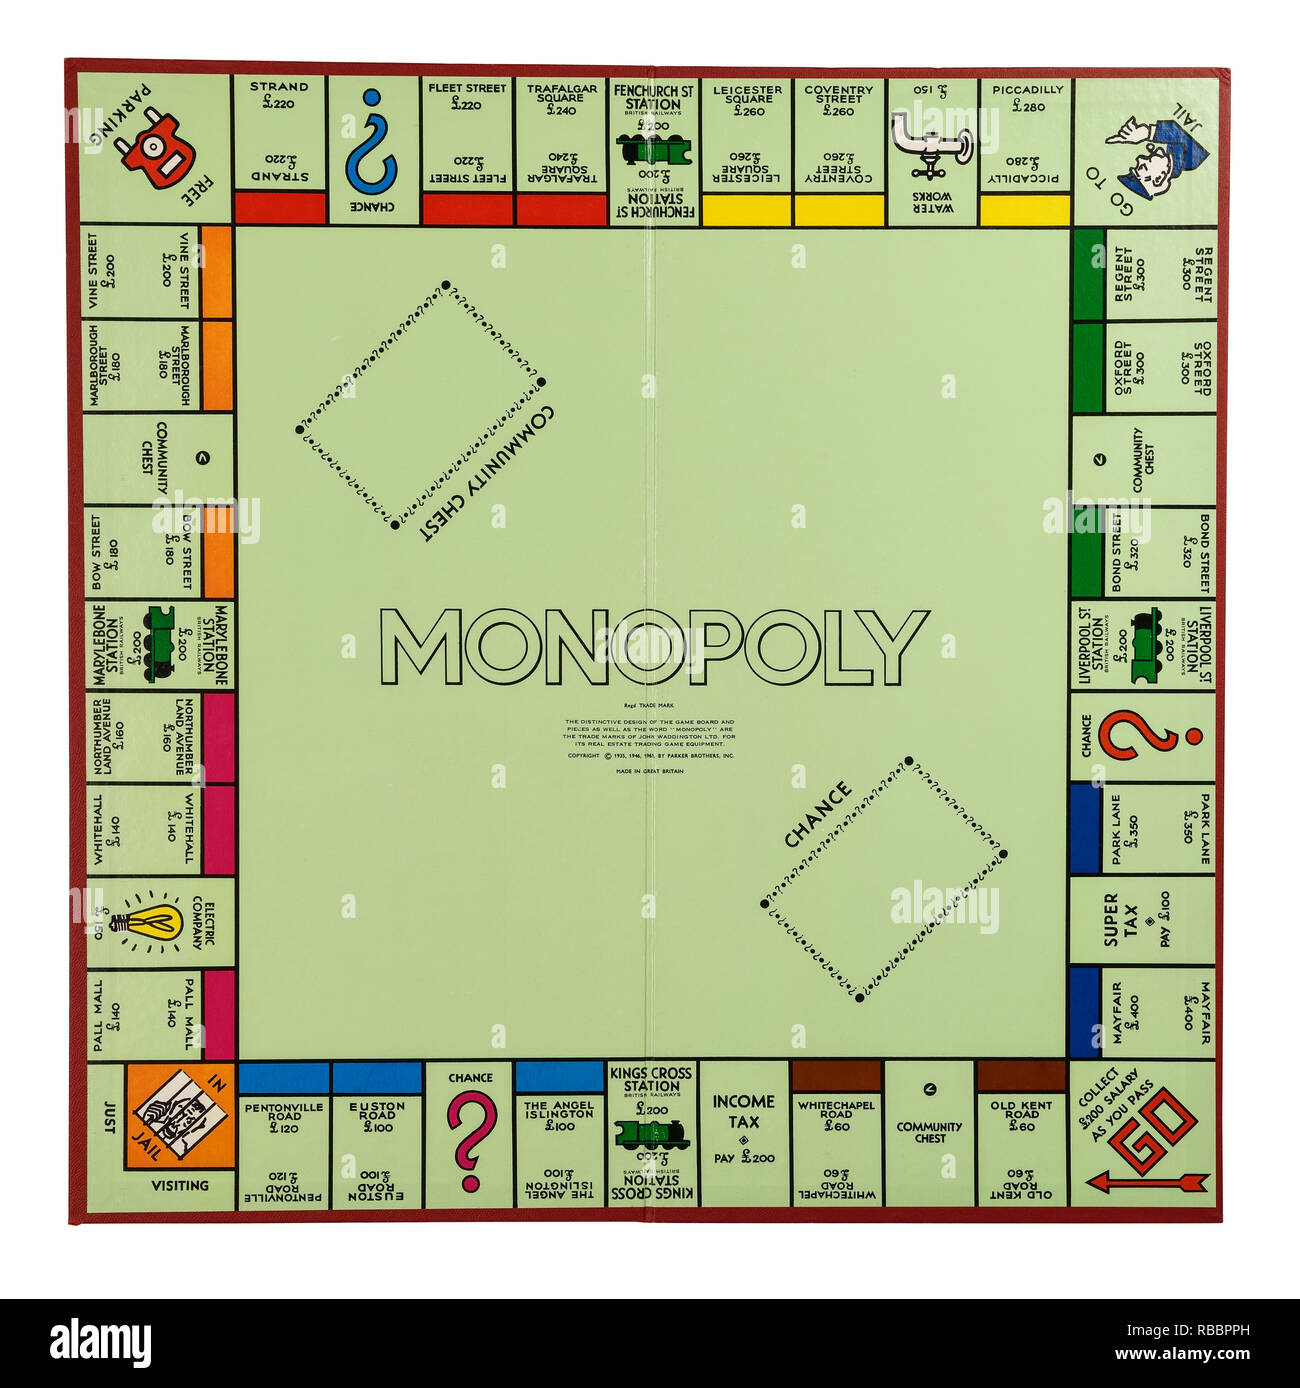 hight resolution of the playing board for the game of monopoly